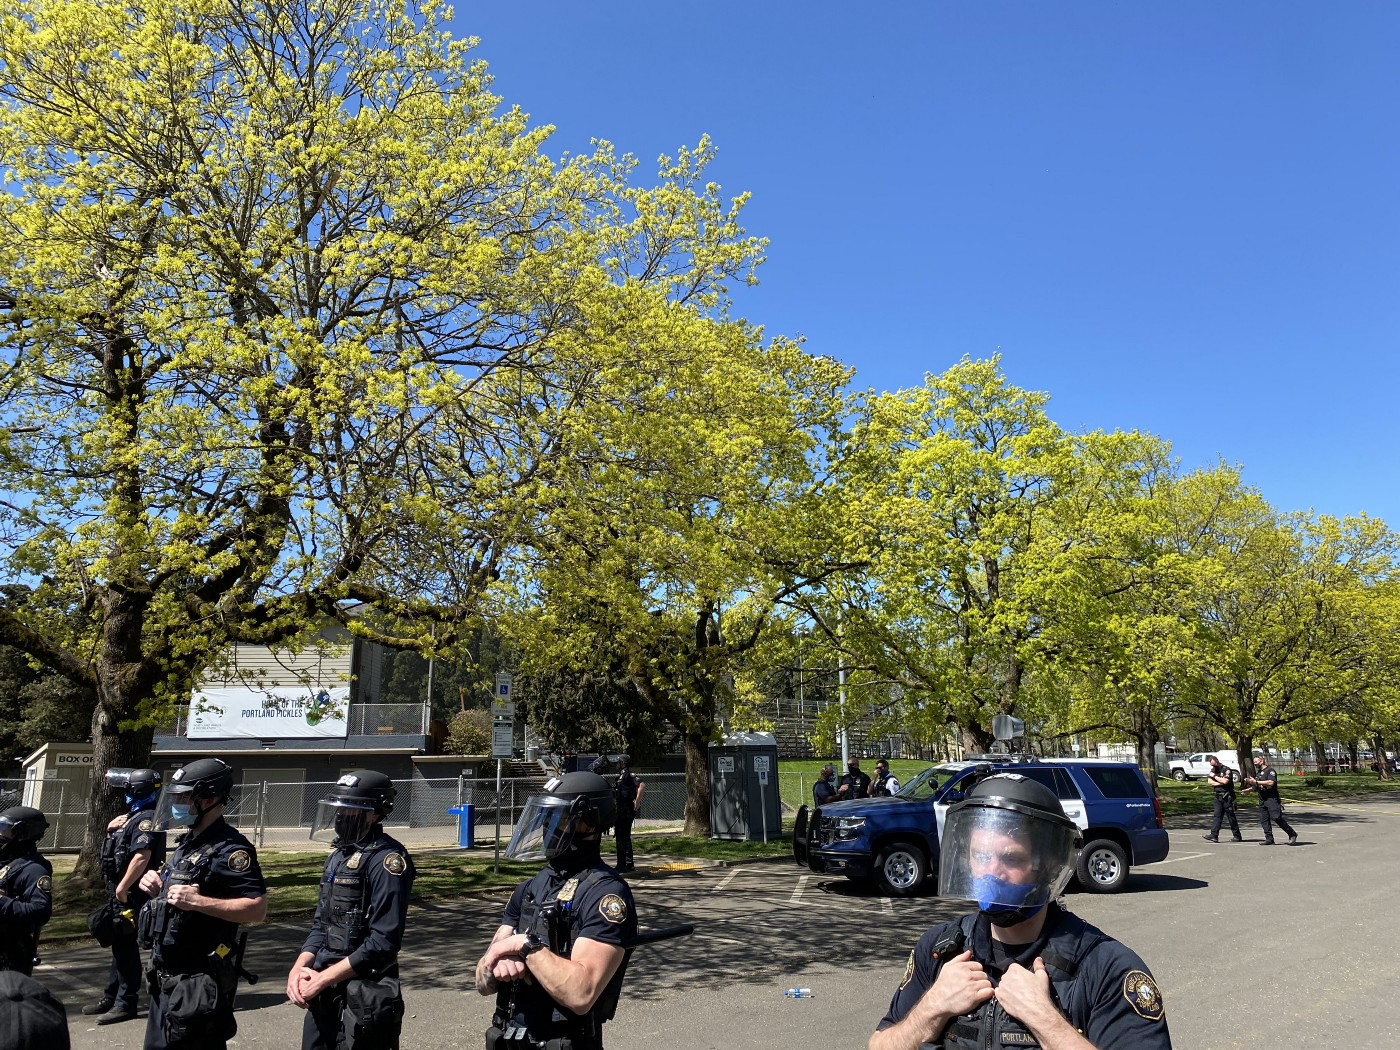 A line of police across the bottom of the photo. Behind them are a row of trees in Lents Park. A police SUV and more officers are visible in the background. Blue sky appears above the scene.